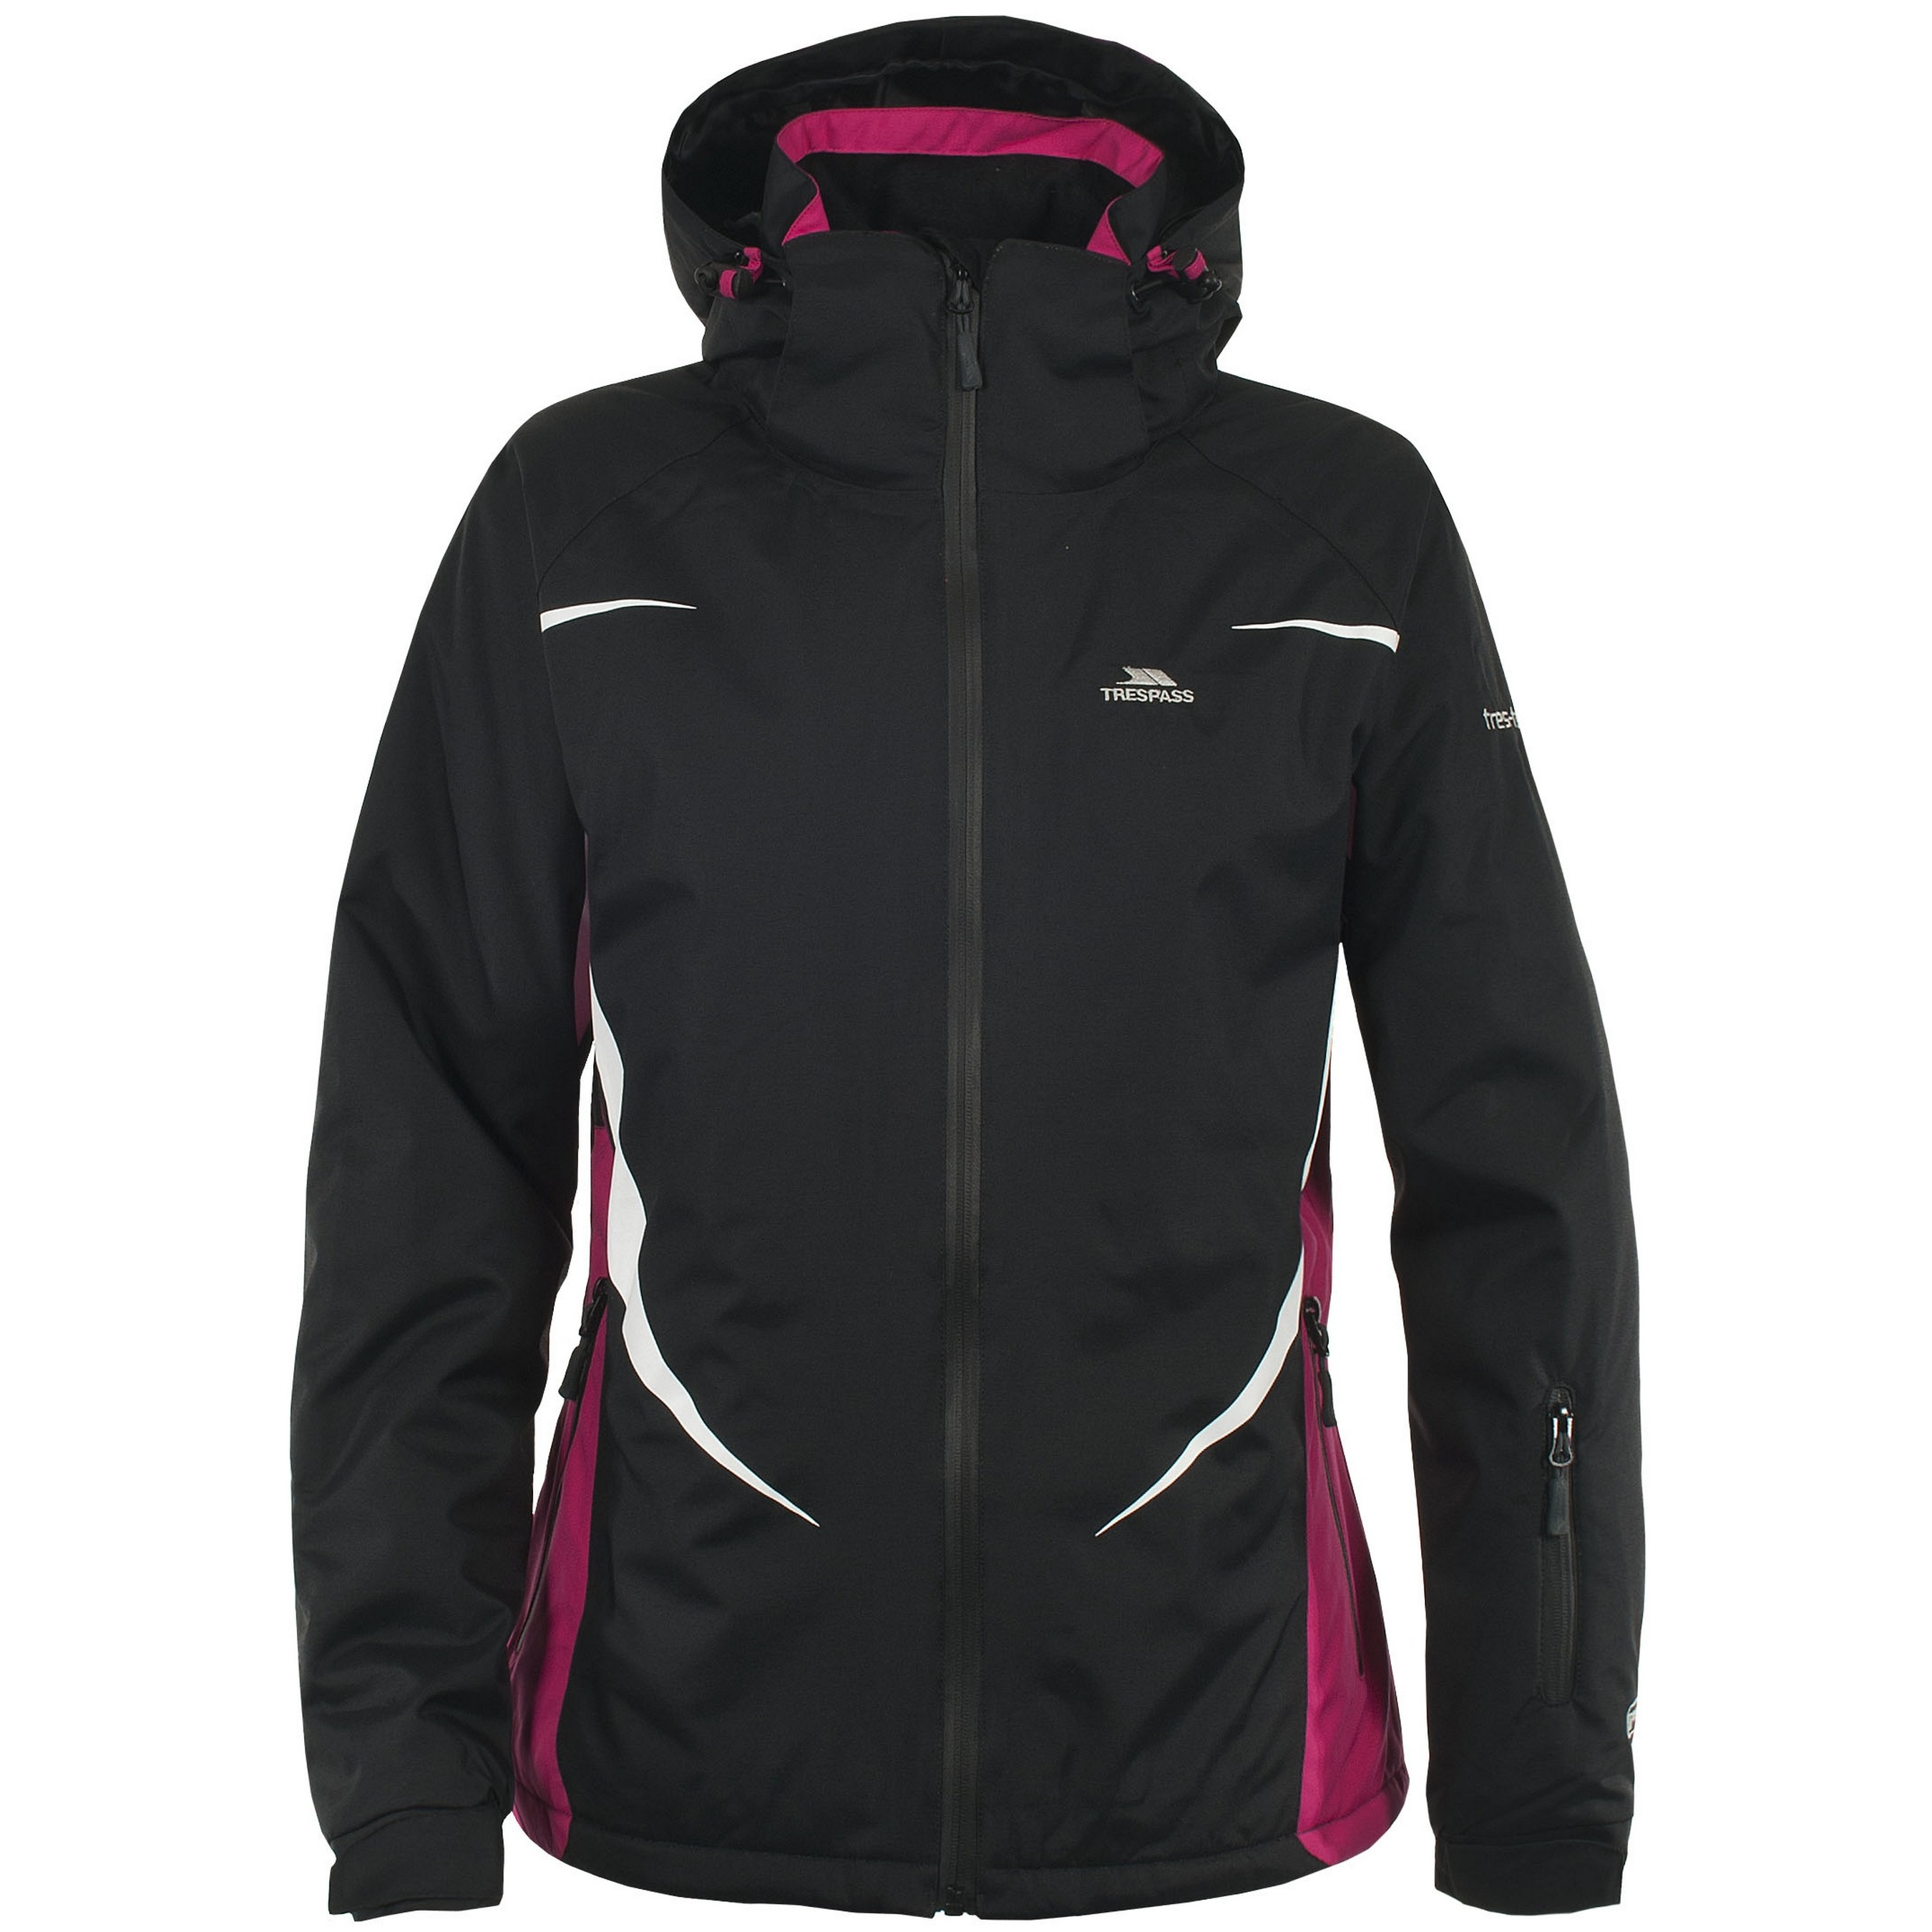 Blacks offer a fantastic range of Women's Ski Wear including Jackets, Salopettes & Accessories from top brands like Helly Hansen & The North Face.